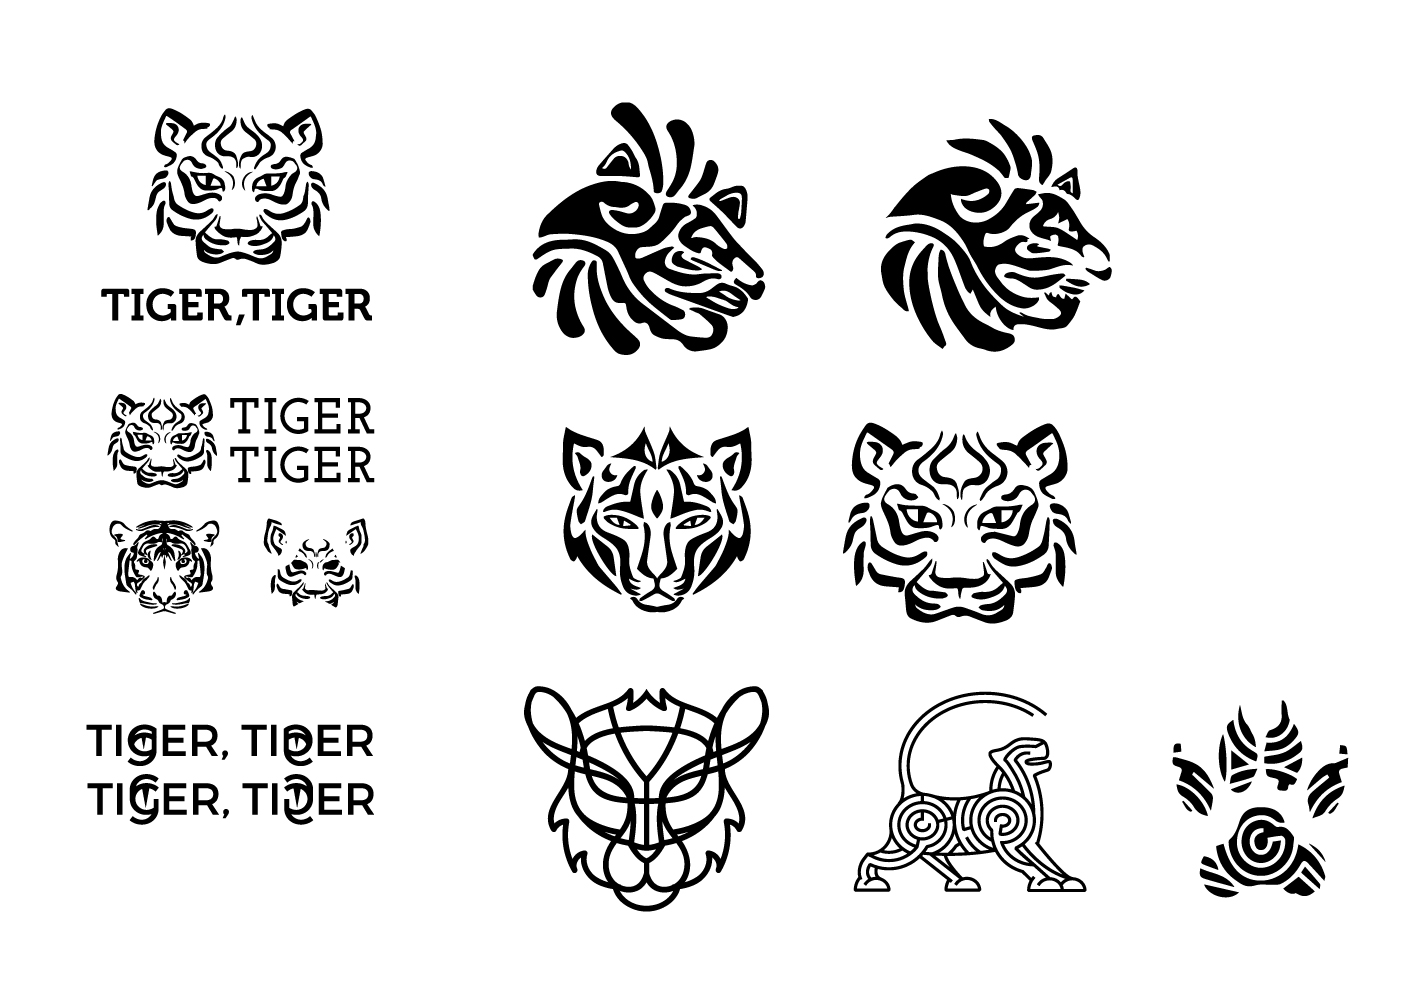 TIGERTIGER_LOGOSTUDIES_020816